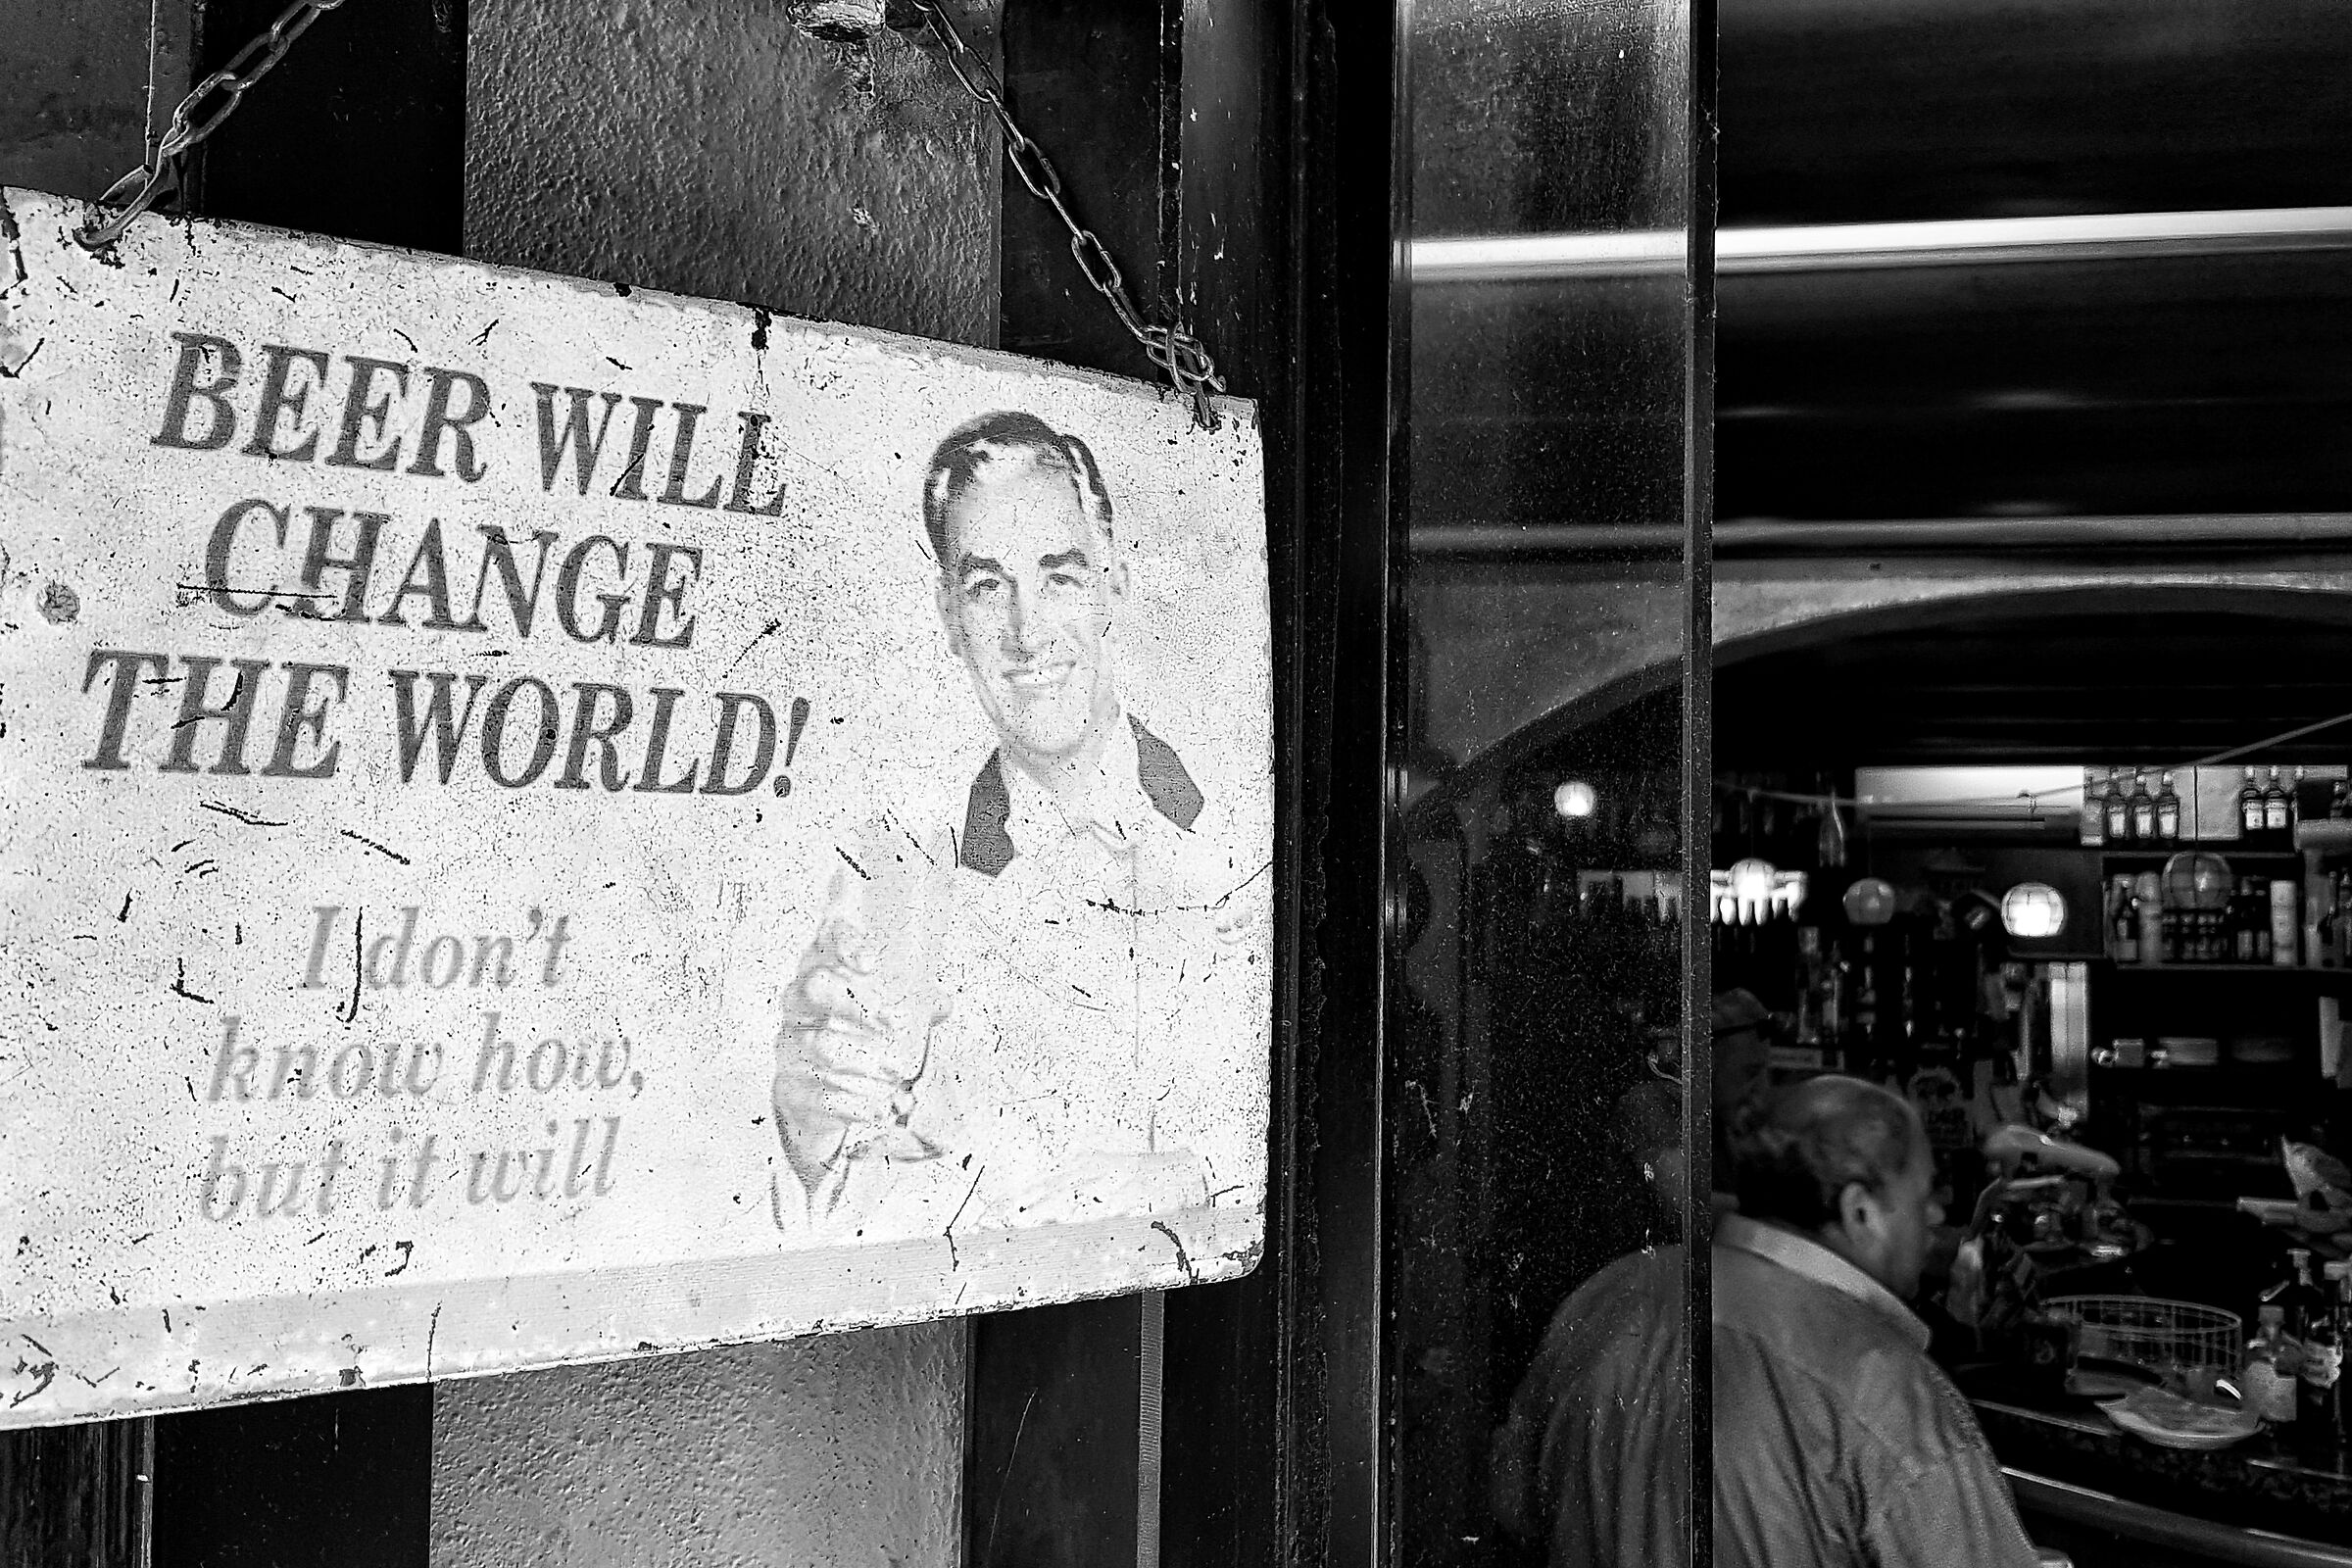 Beer will change the world!...